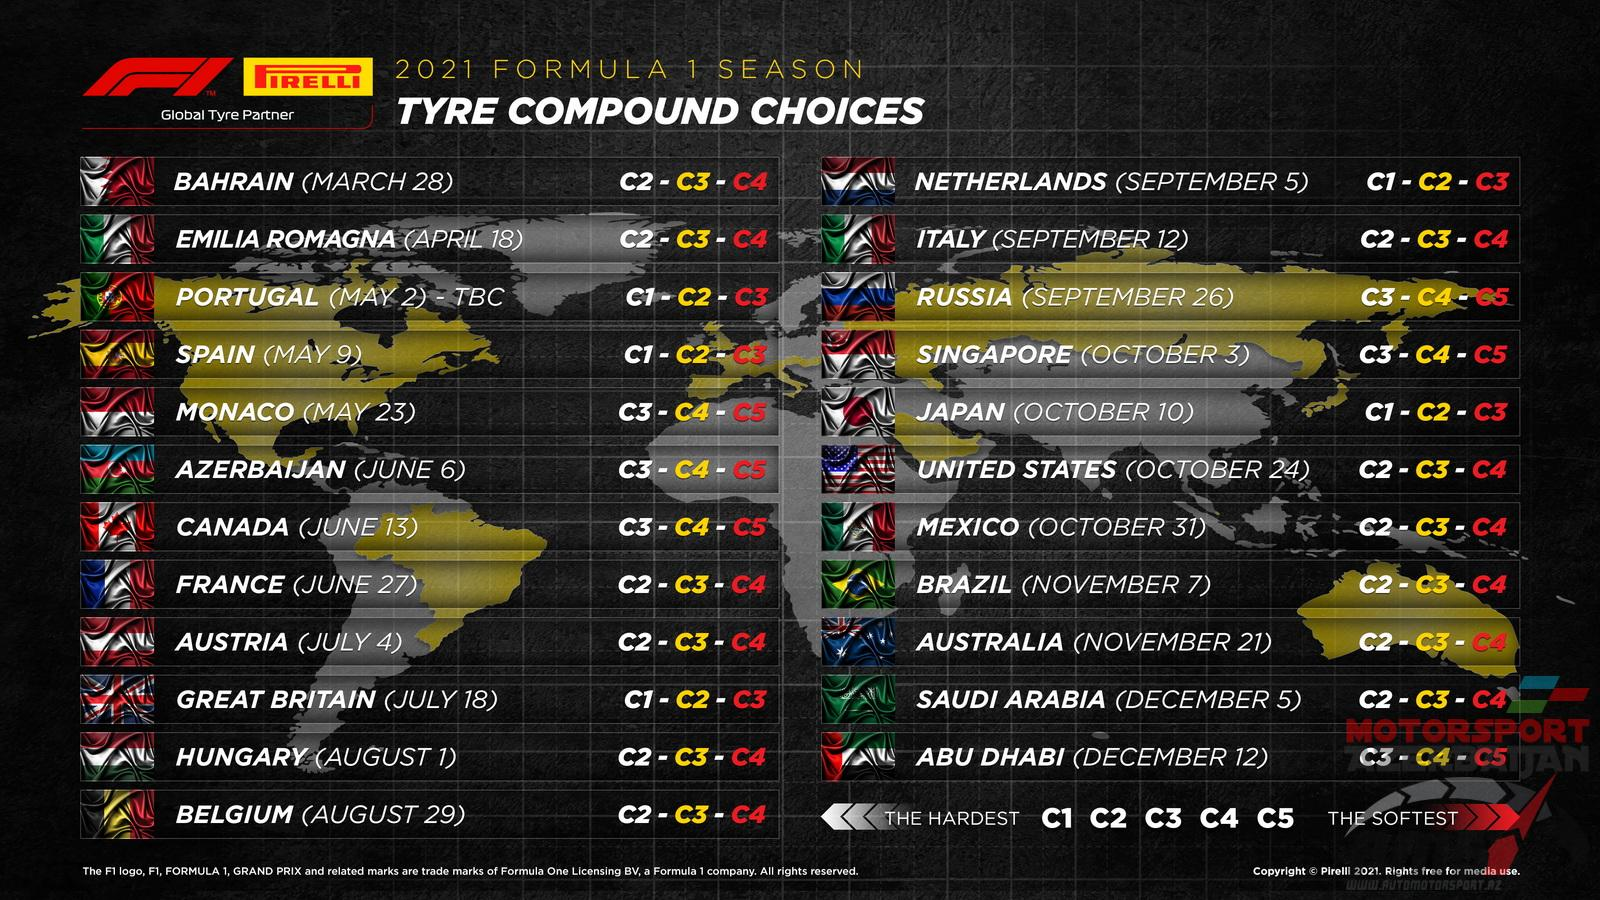 Tyre compound choices